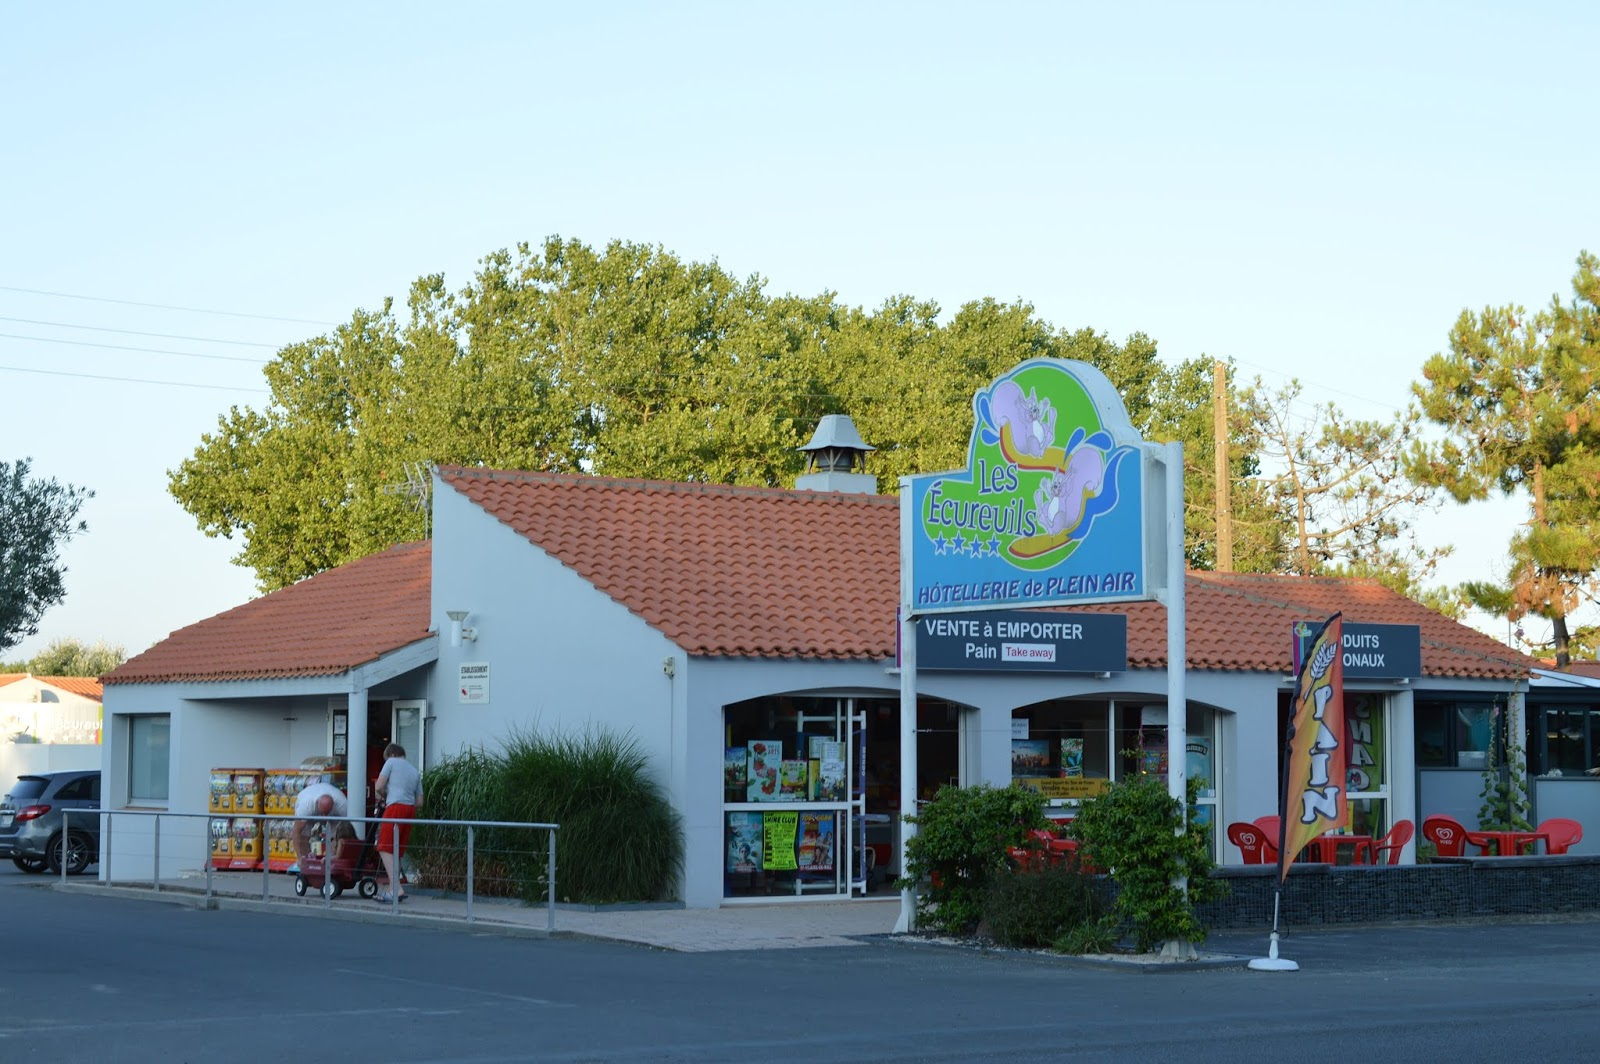 Les Ecureuils Campsite, Vendee - A Eurocamp Site near Puy du Fou (Full Review) - Amy's House